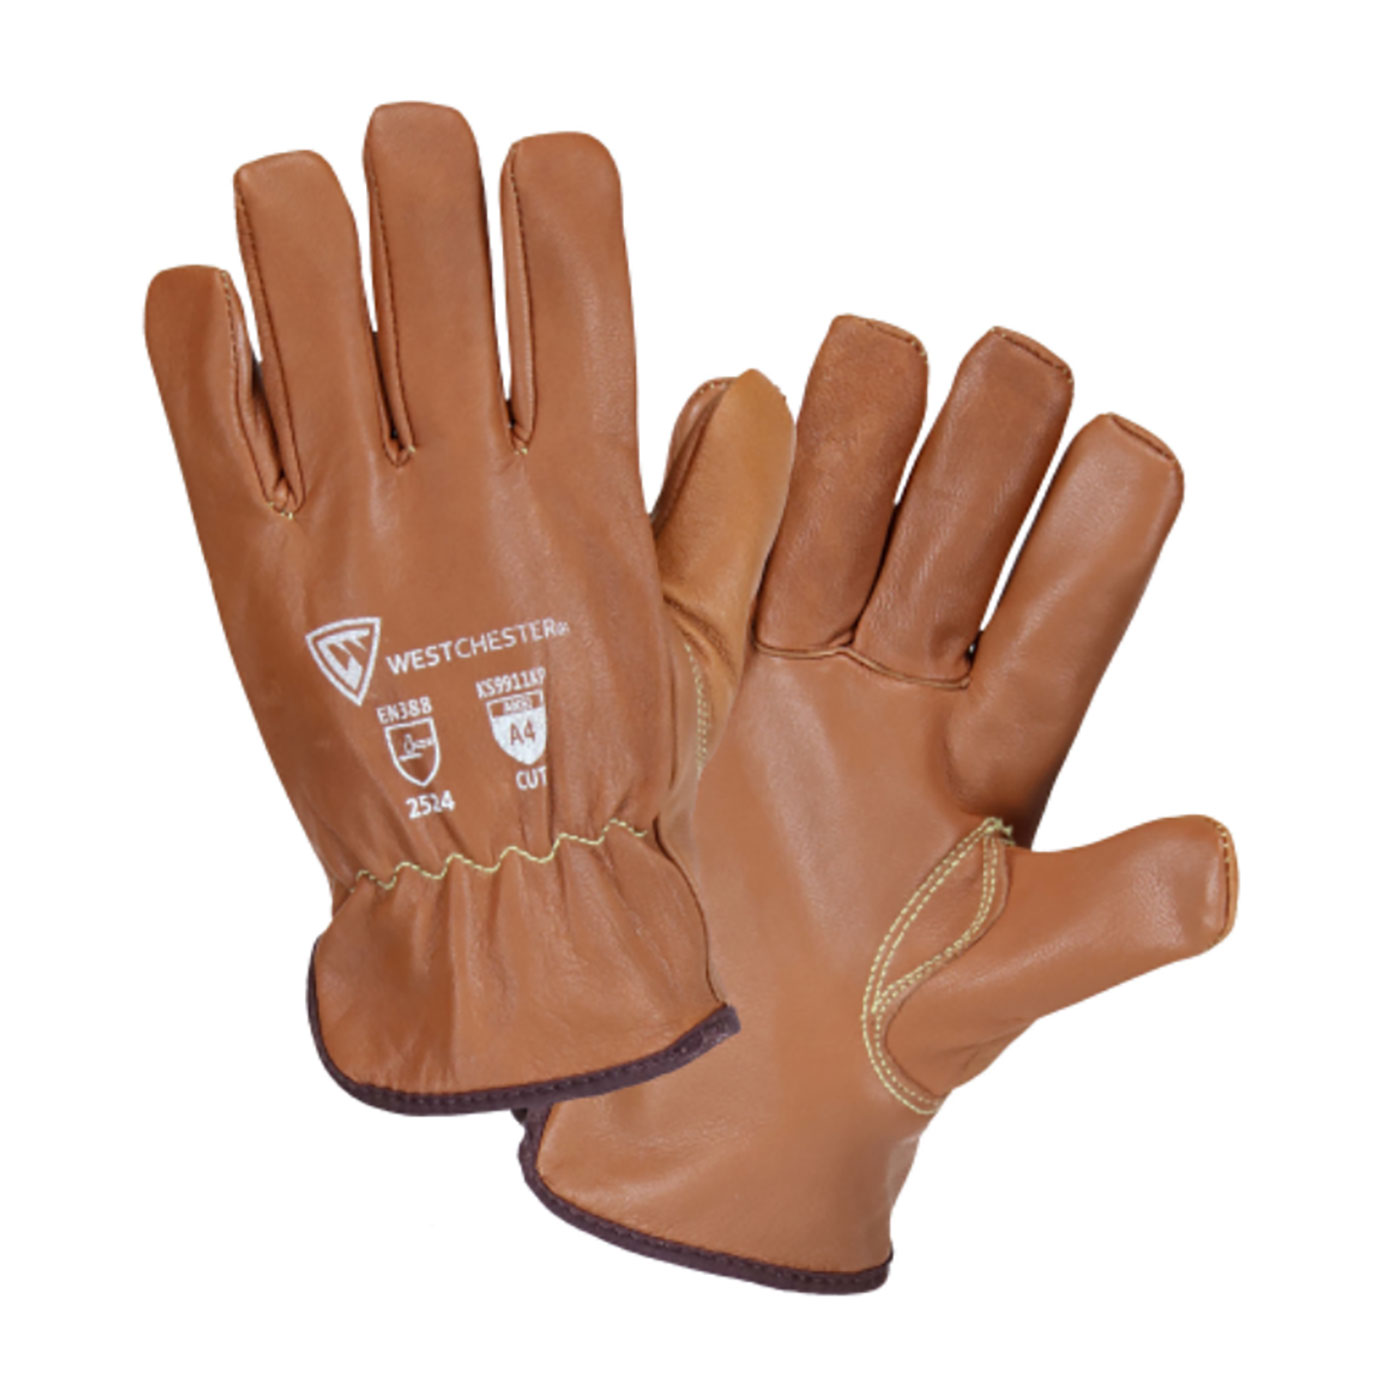 KS9911KP PIP® West Chester® Top Grain Goatskin Leather Drivers Glove with Para-Aramid and Fleece Lining feature Oil Armor™